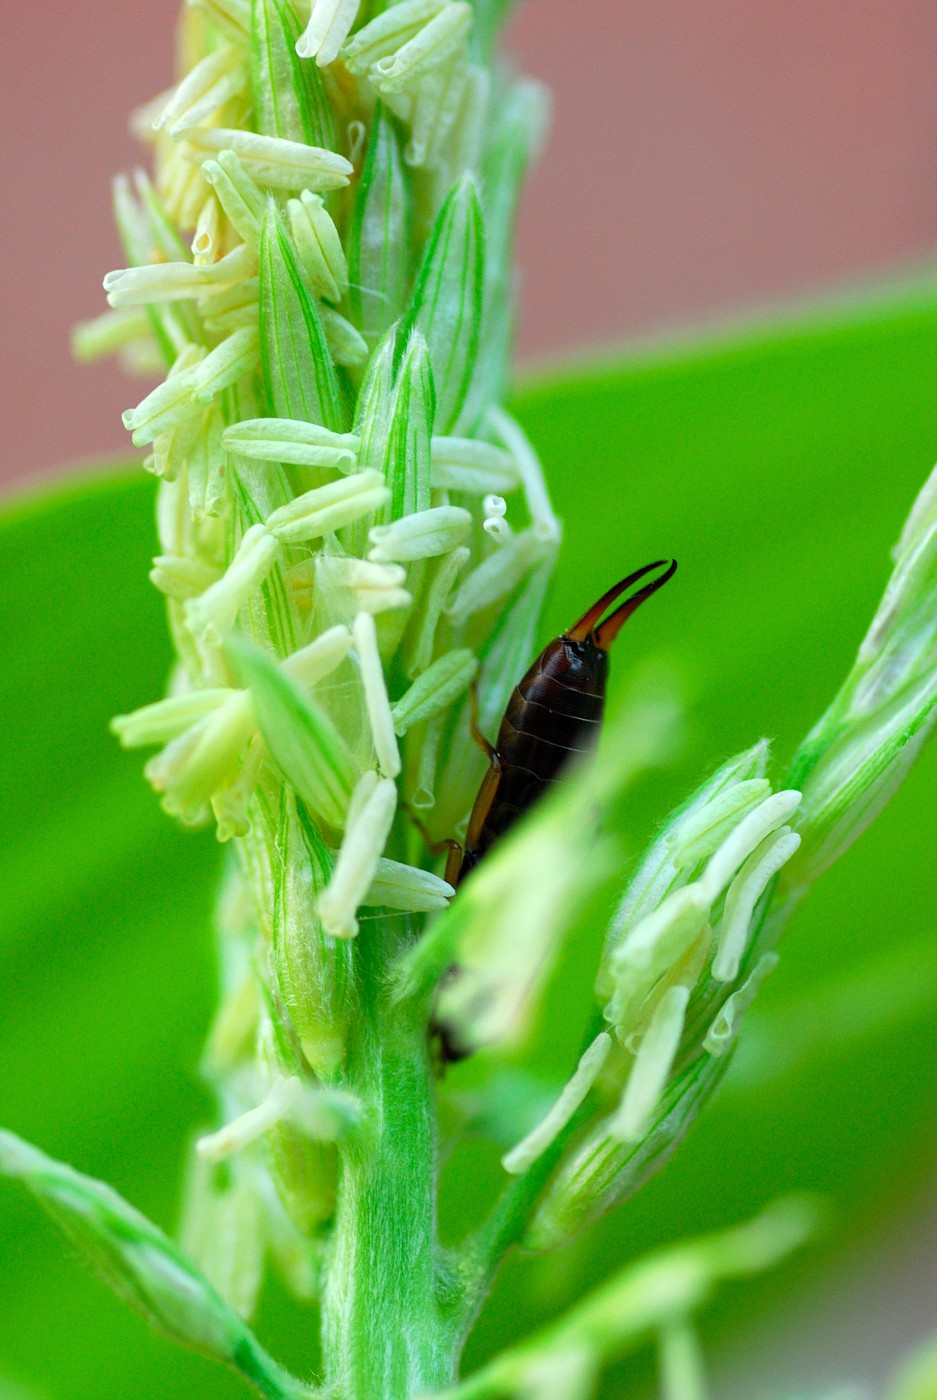 EarWig In the Crops :O